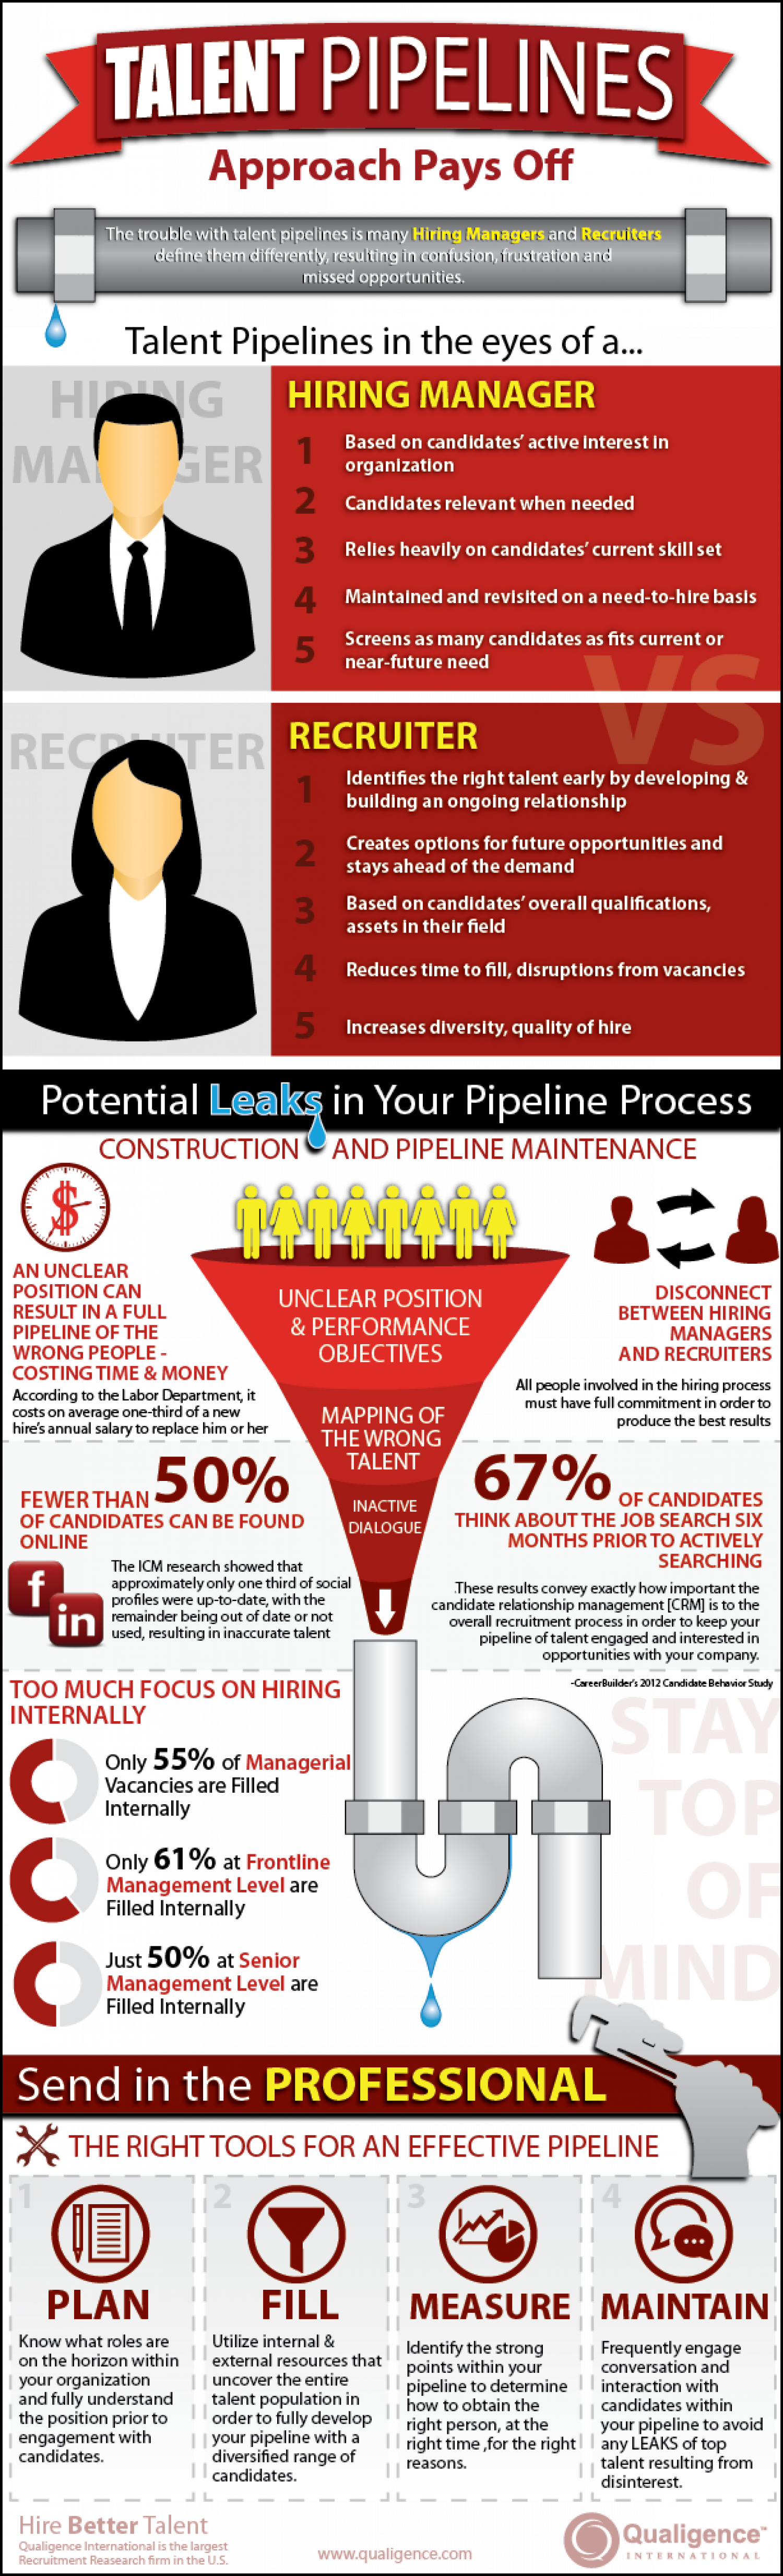 Talent Pipelines: Approach Pays Off Infographic